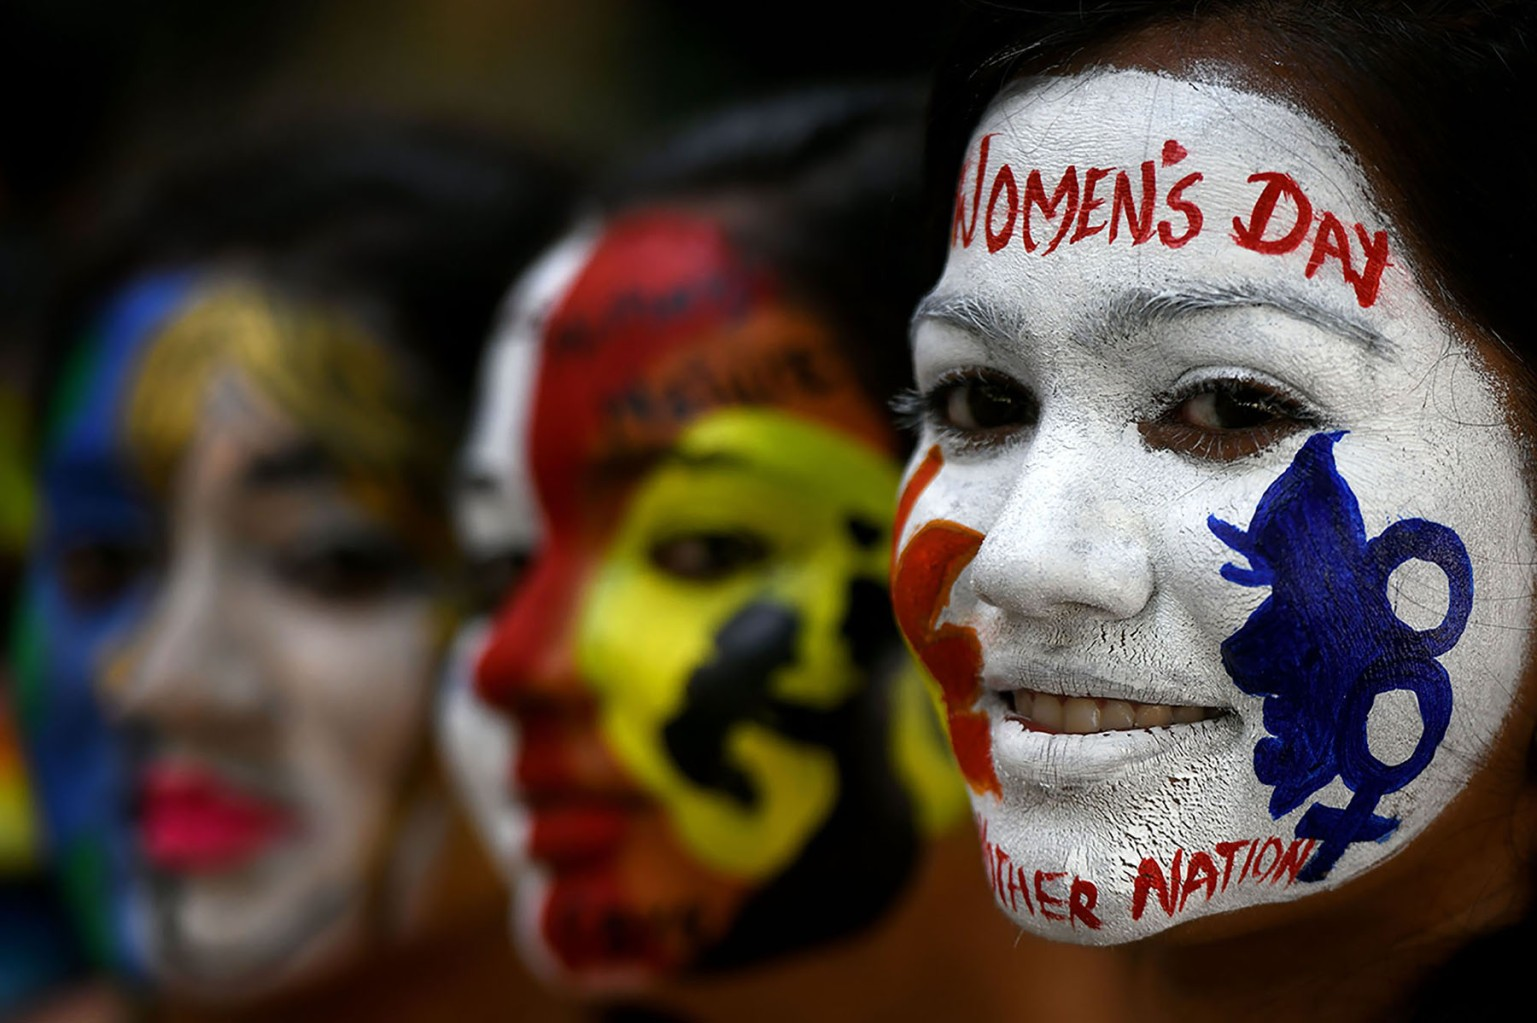 Indian students pose during an International Women's Day celebration at a college in Chennai on March 8. (Arun Sankar/AFP/Getty Images)